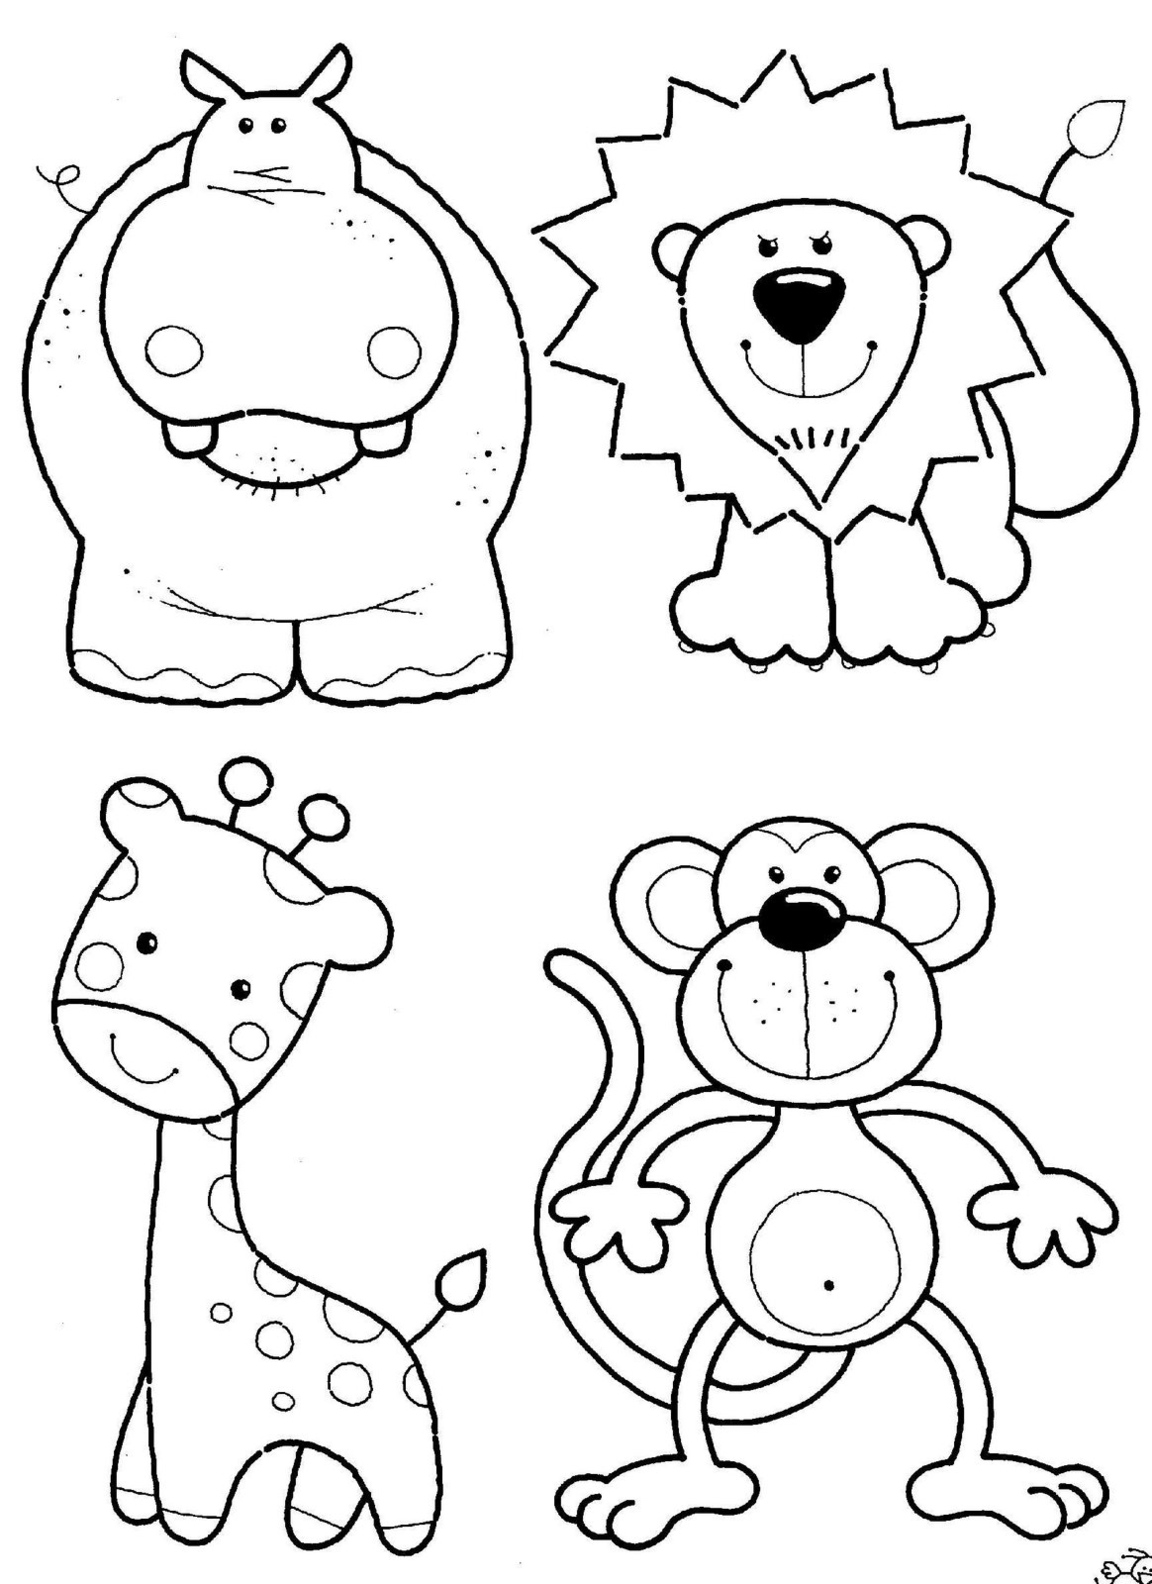 animal coloring page adult coloring pages animals best coloring pages for kids coloring page animal